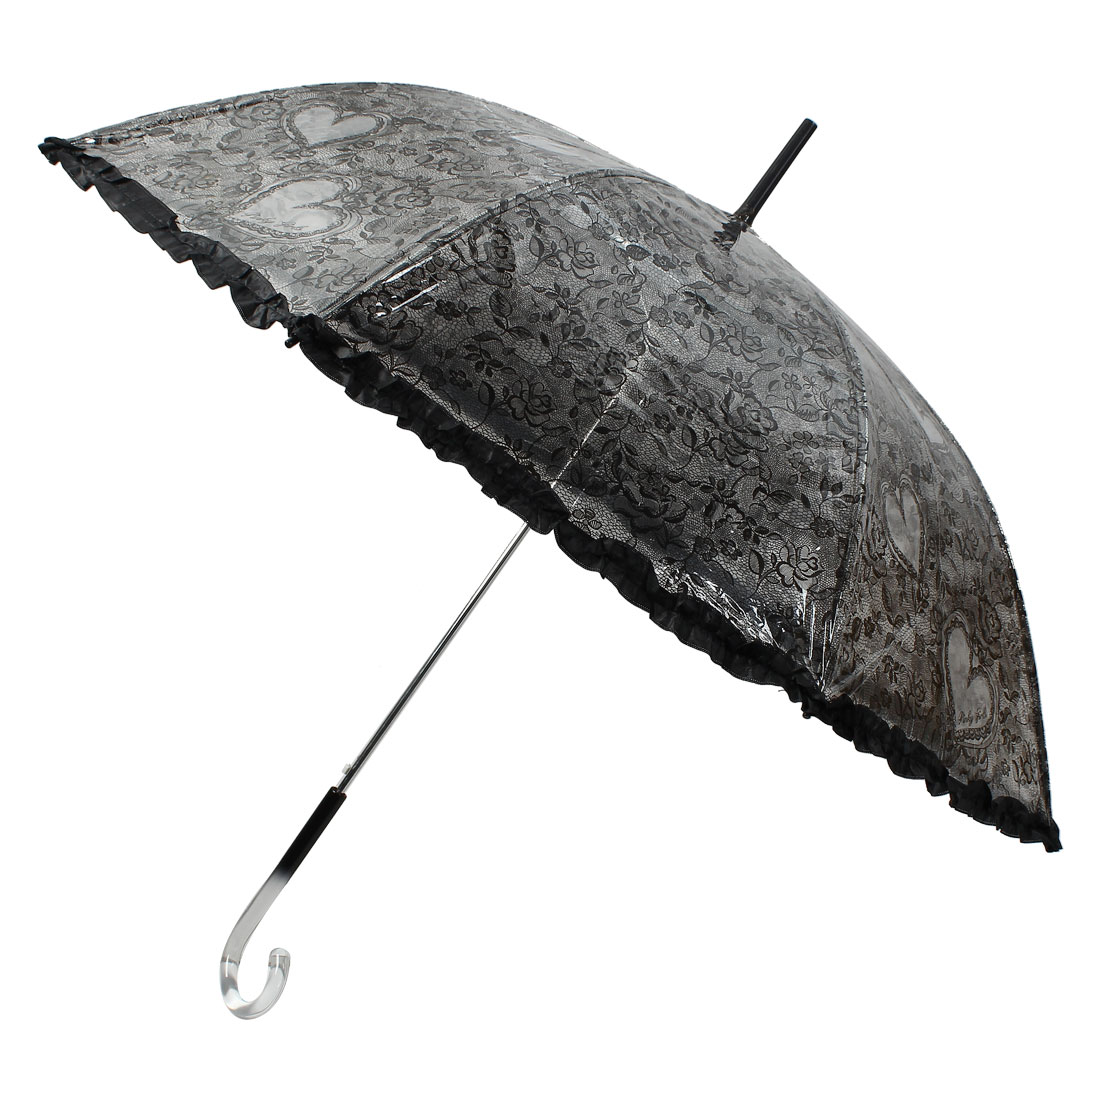 Hooked Handle Floral Heart Printed Lace Brim Umbrella Rain Gear Clear Black